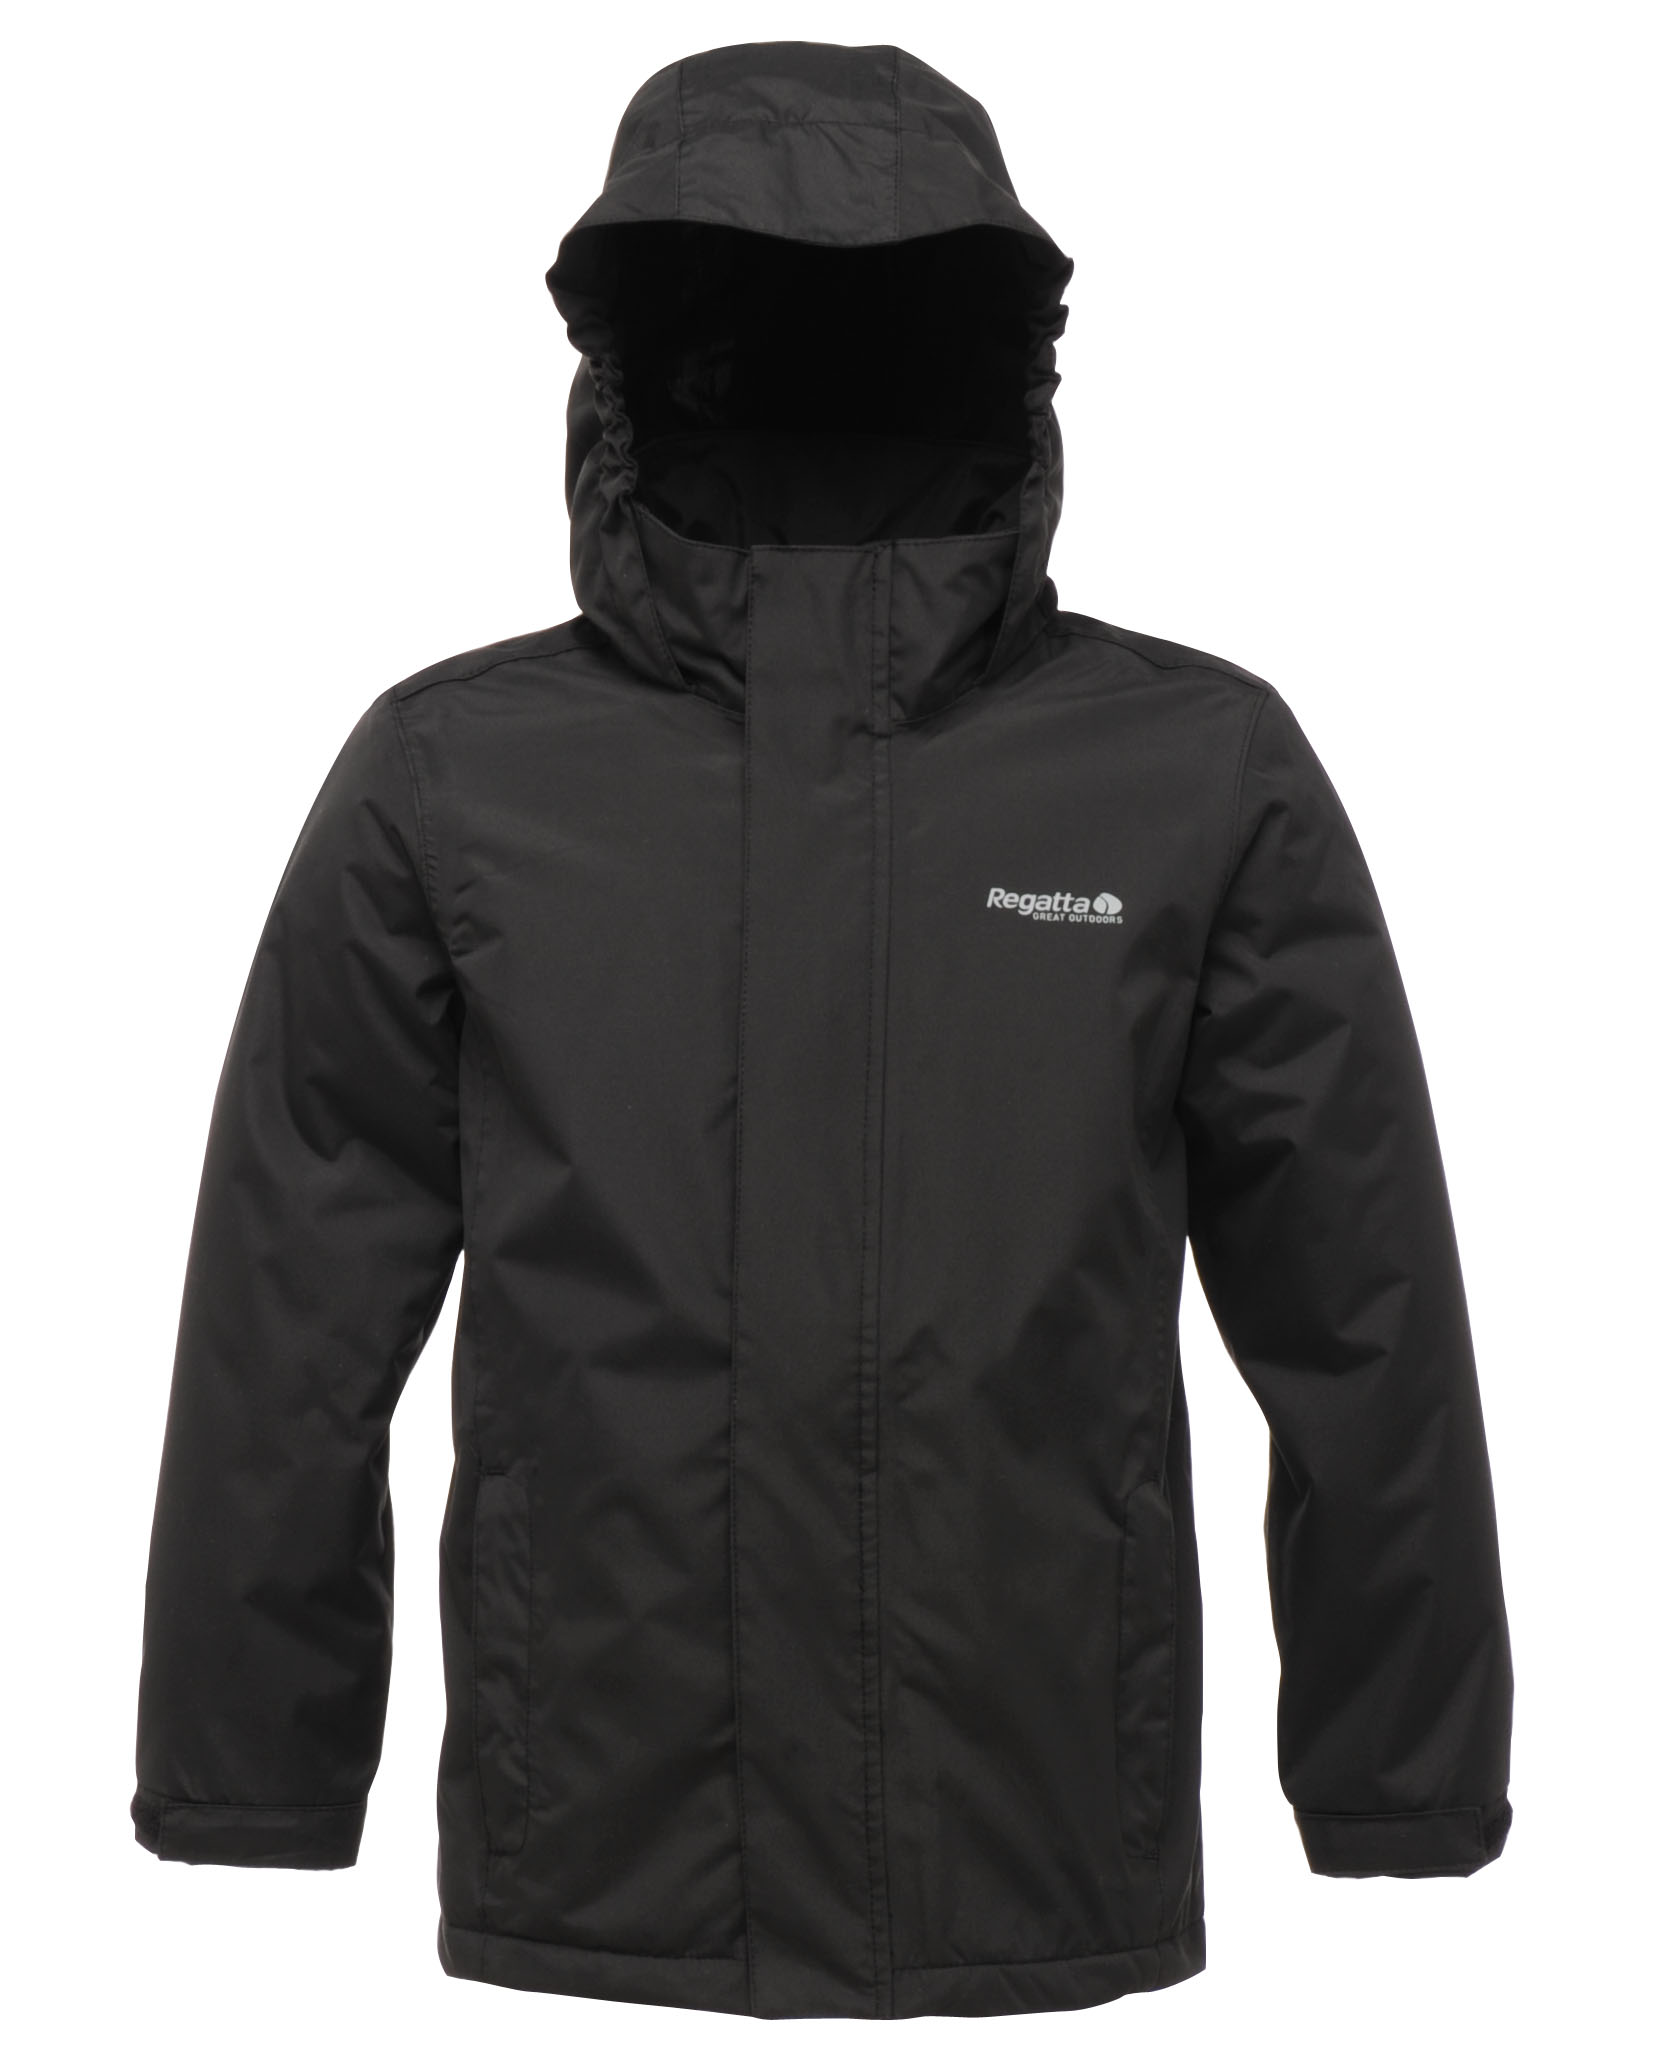 Regatta Westburn Boy's Fleece Lined Waterproof Jacket